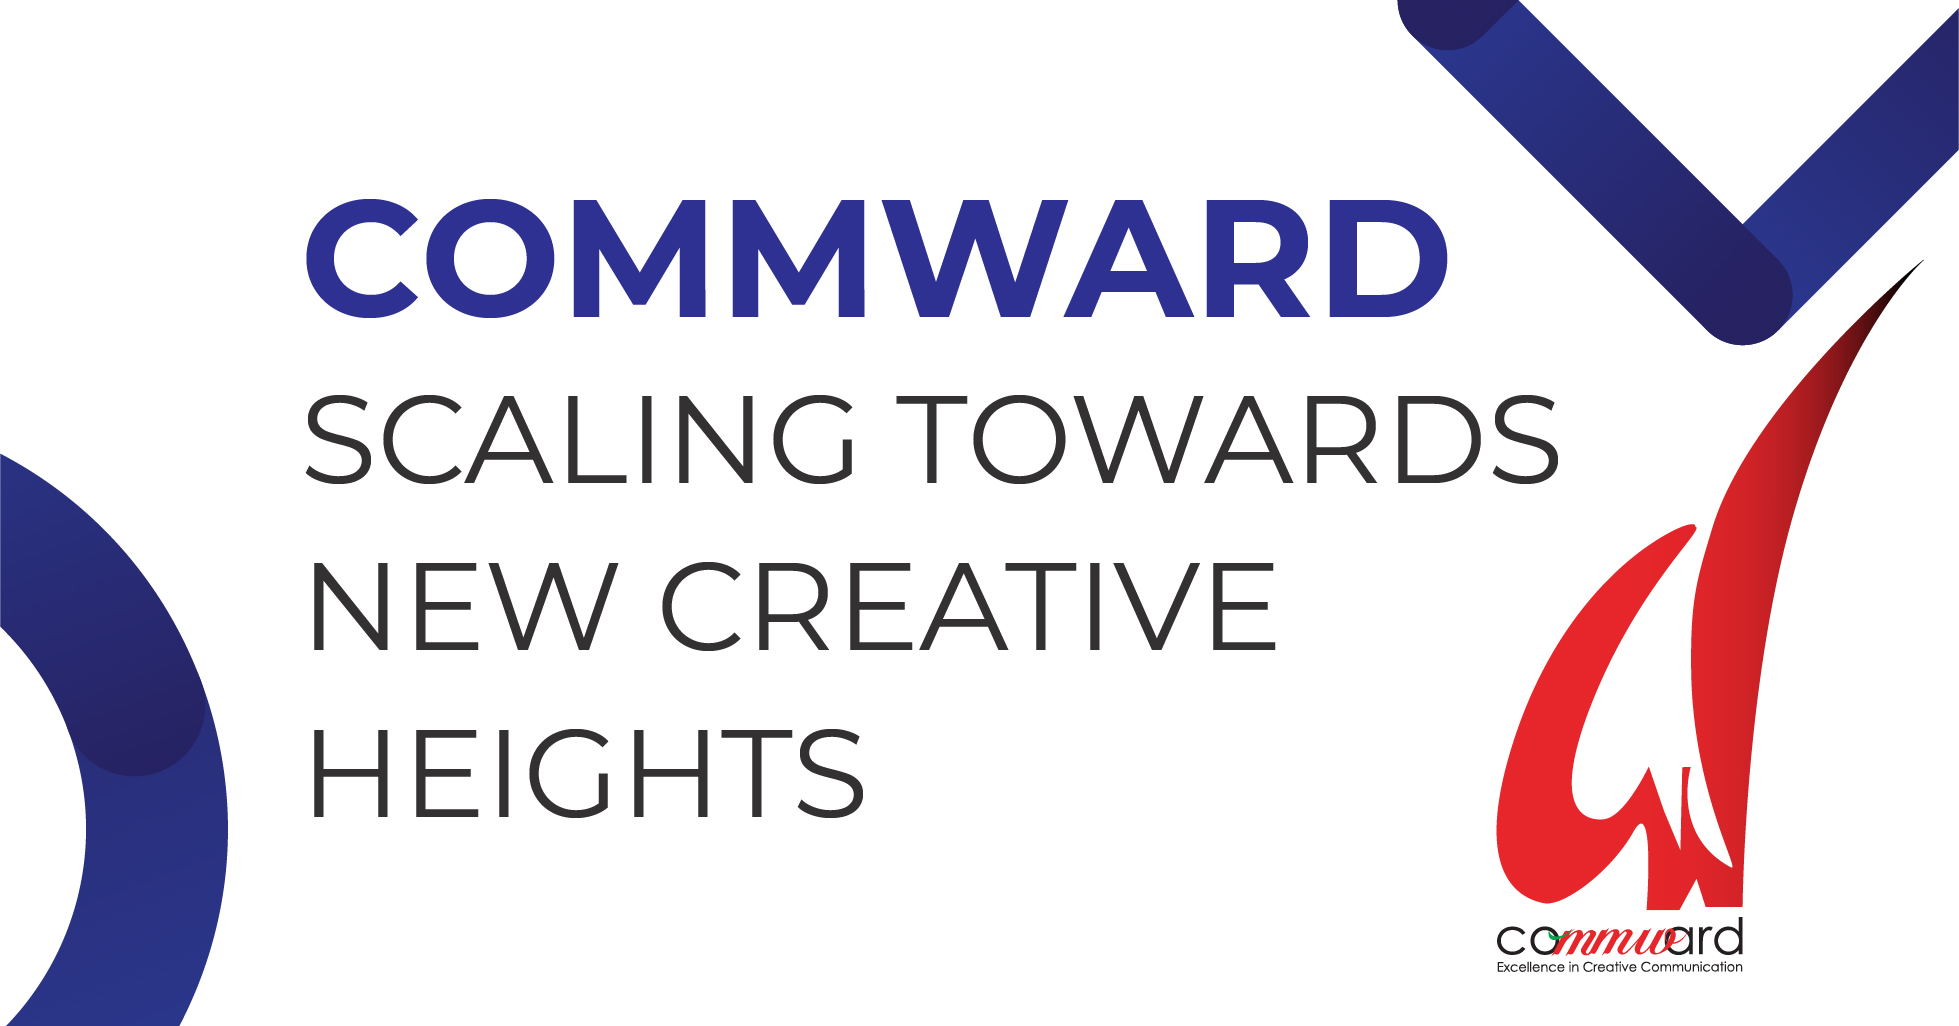 Commward Scaling Towards New Creative Heights